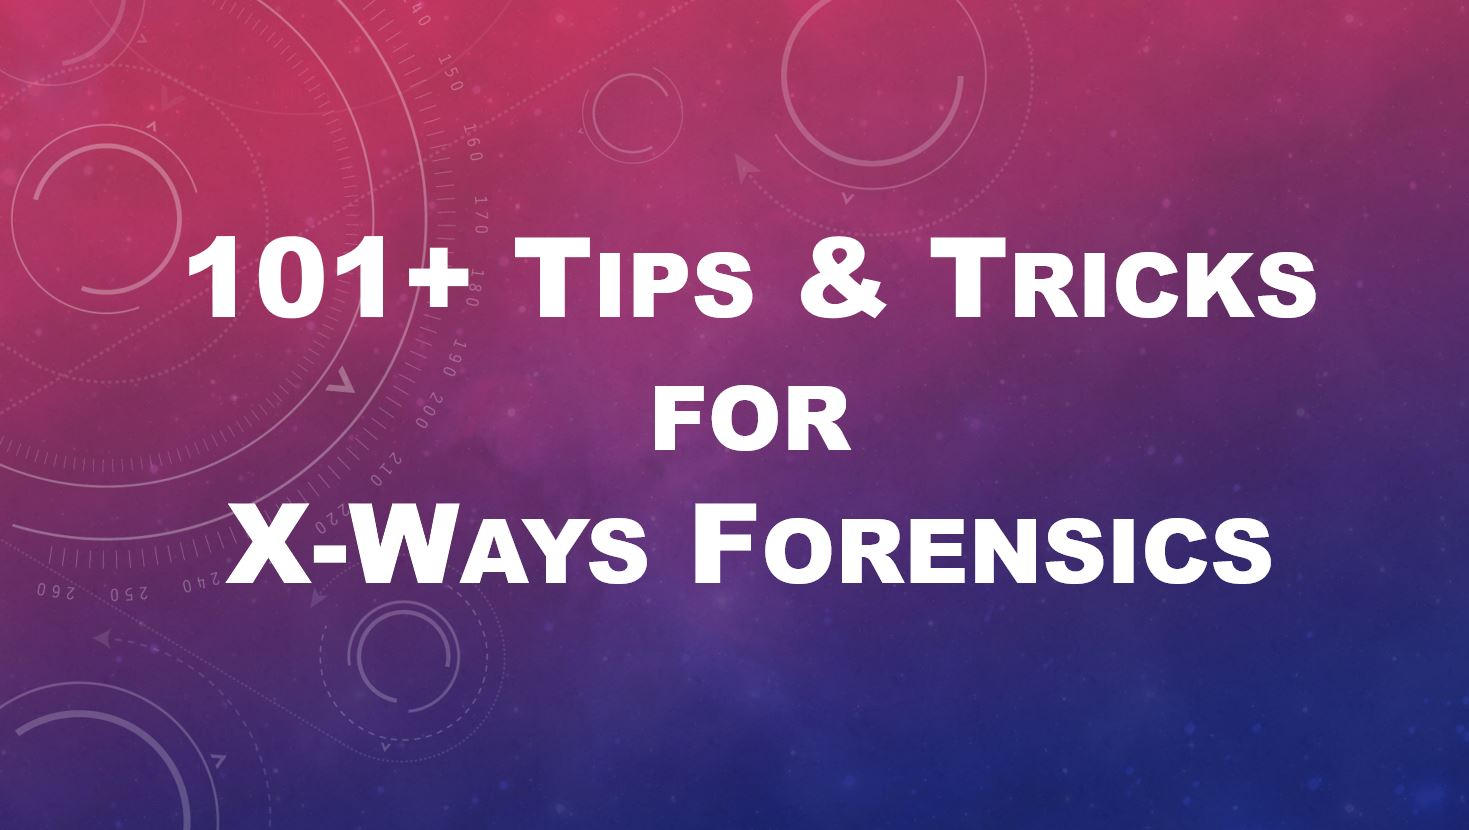 101+ Tips & Tricks for X-Ways Forensics